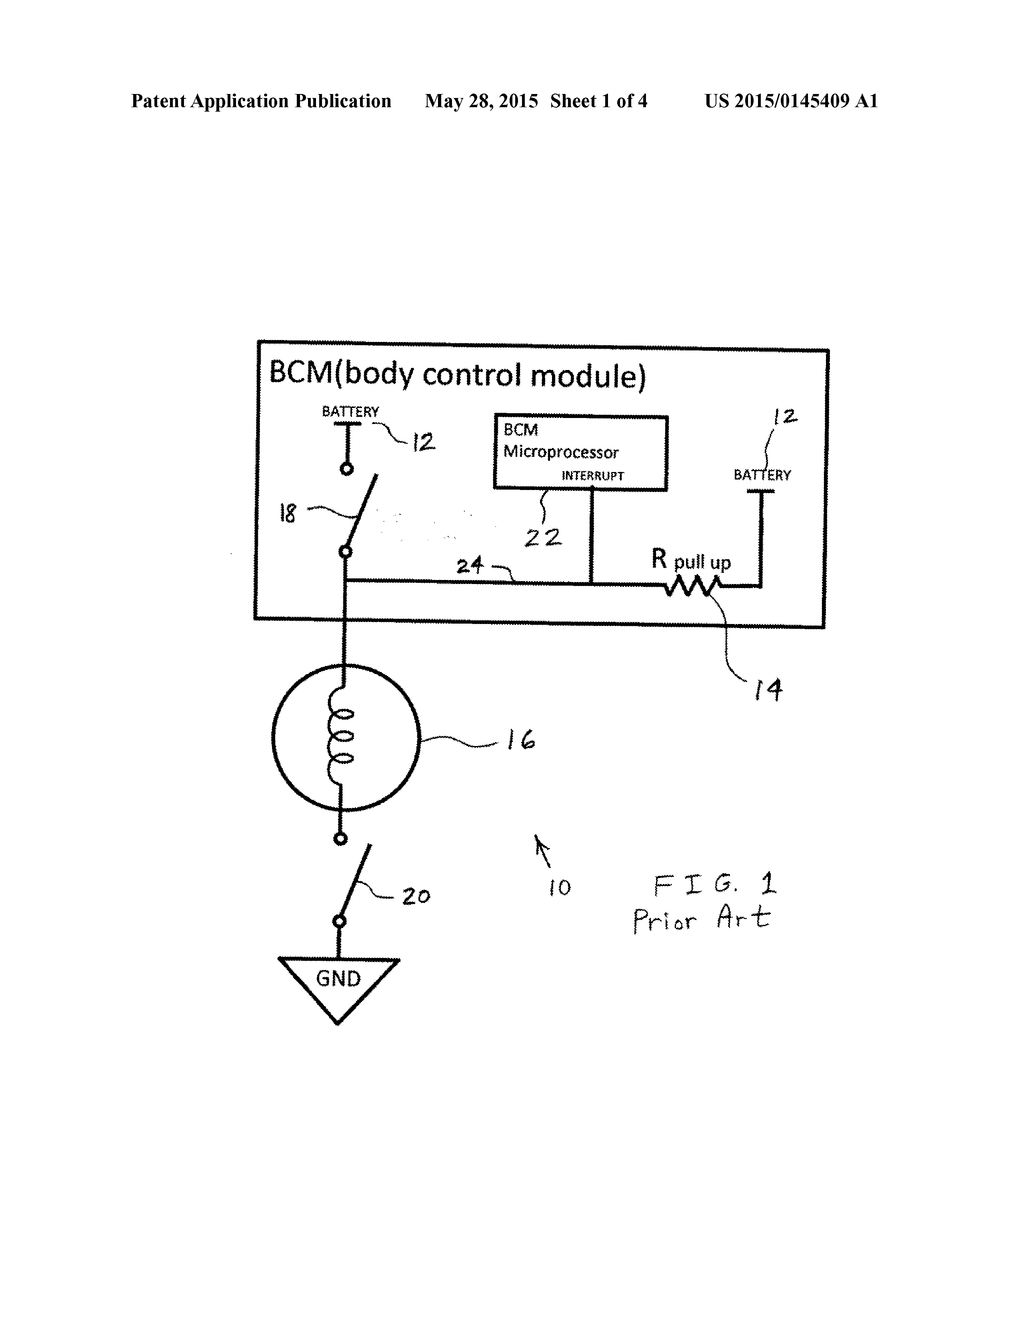 automotive led bleed resistor circuit and body control module interrupt  wakeup circuit - diagram, schematic, and image 02